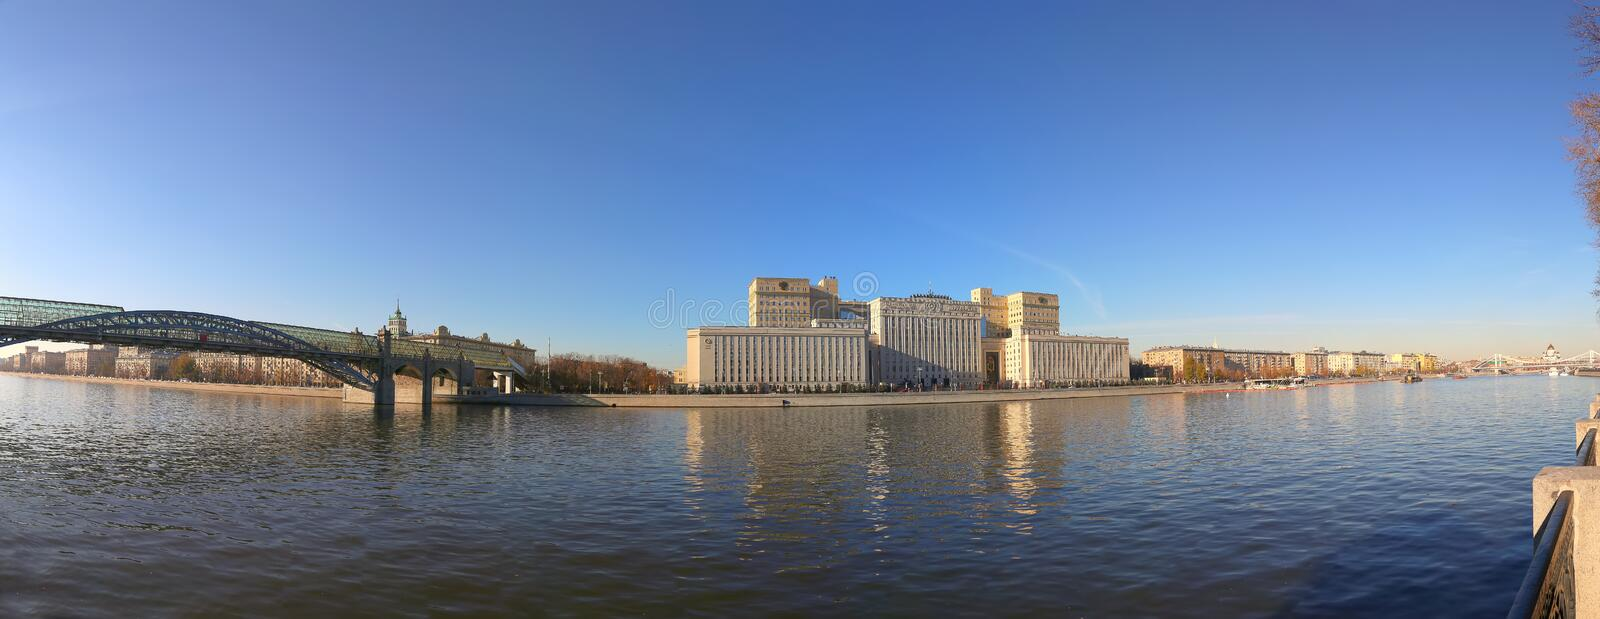 Main Building of the Ministry of Defence of the Russian Federation Minoboron-- is the governing body of the Russian Armed Forces. And Moskva River panorama royalty free stock photography